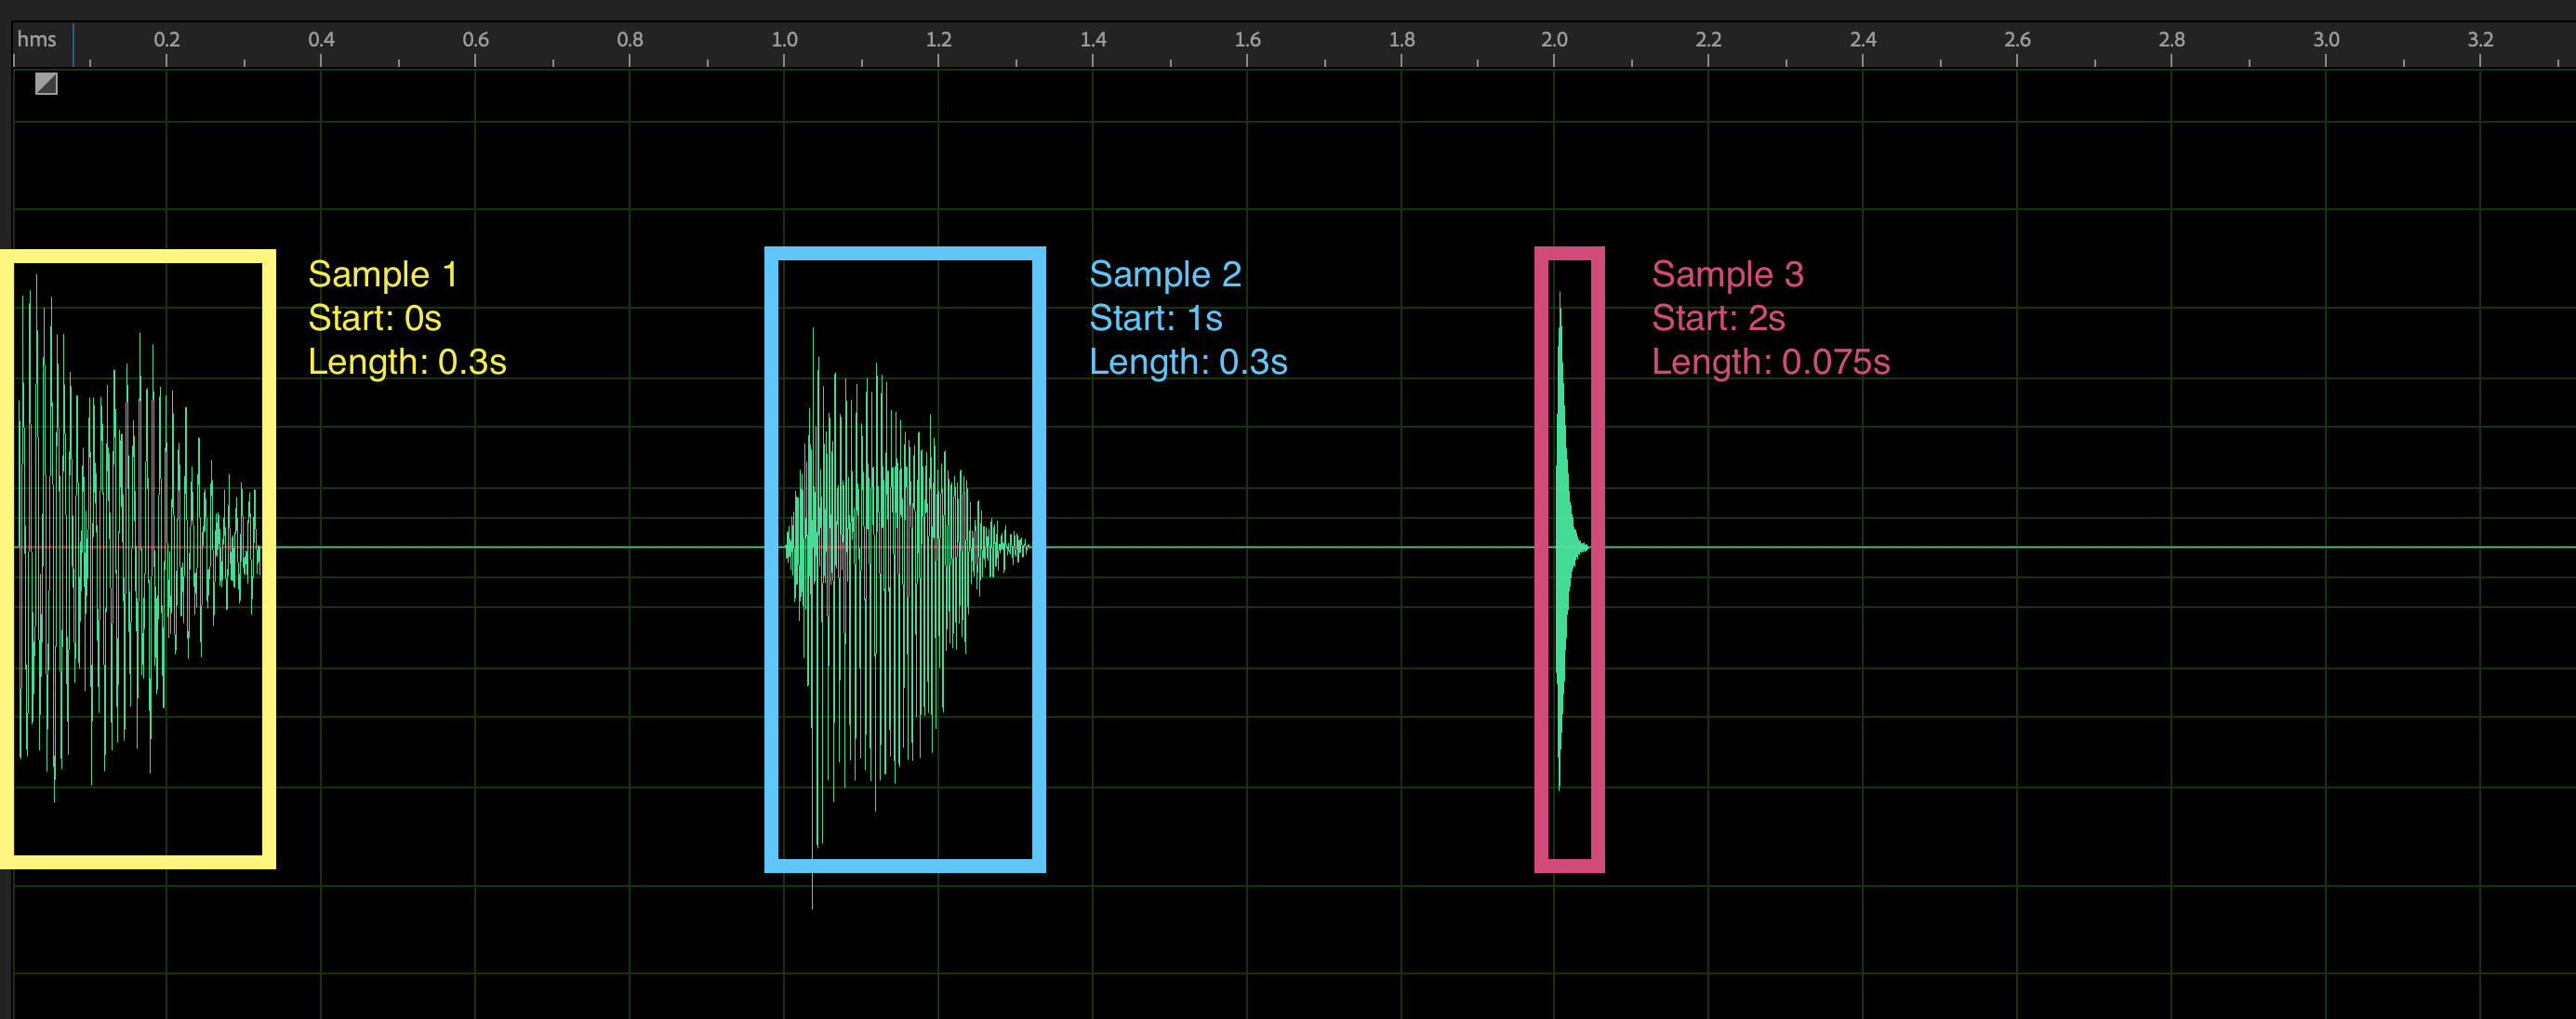 Waveform visualization showing how each sprite occupies a chunk of time, and is labeled by its start time and duration